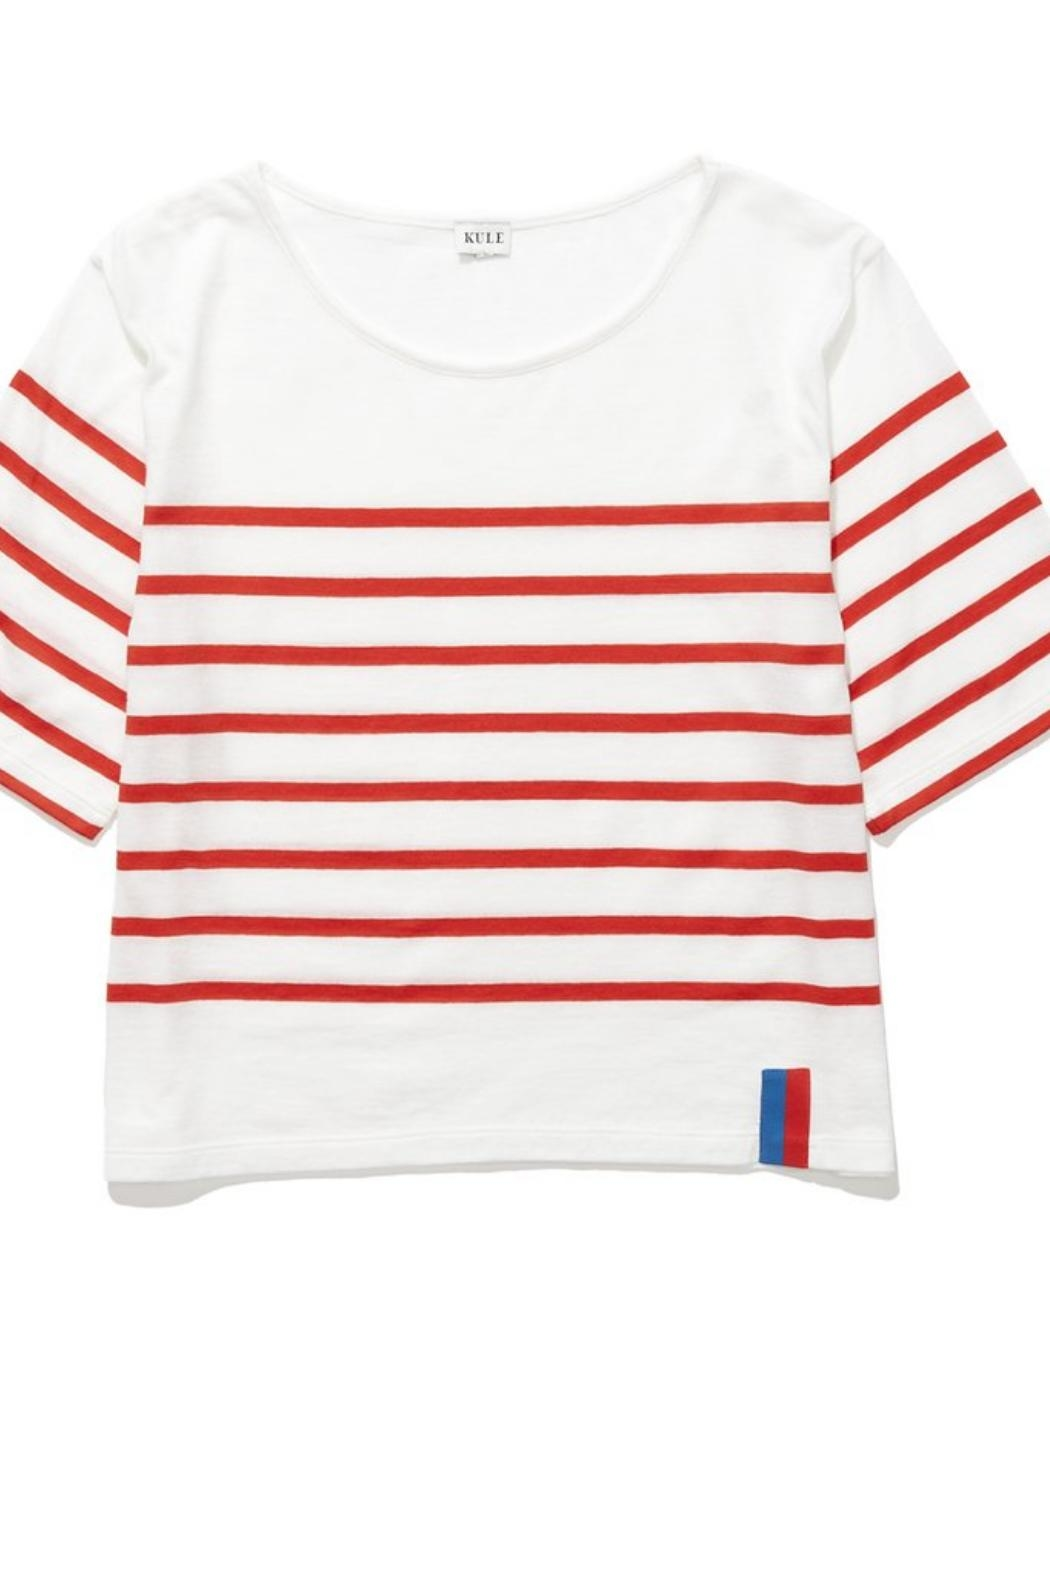 Kule Striped Crop Tee - Front Cropped Image